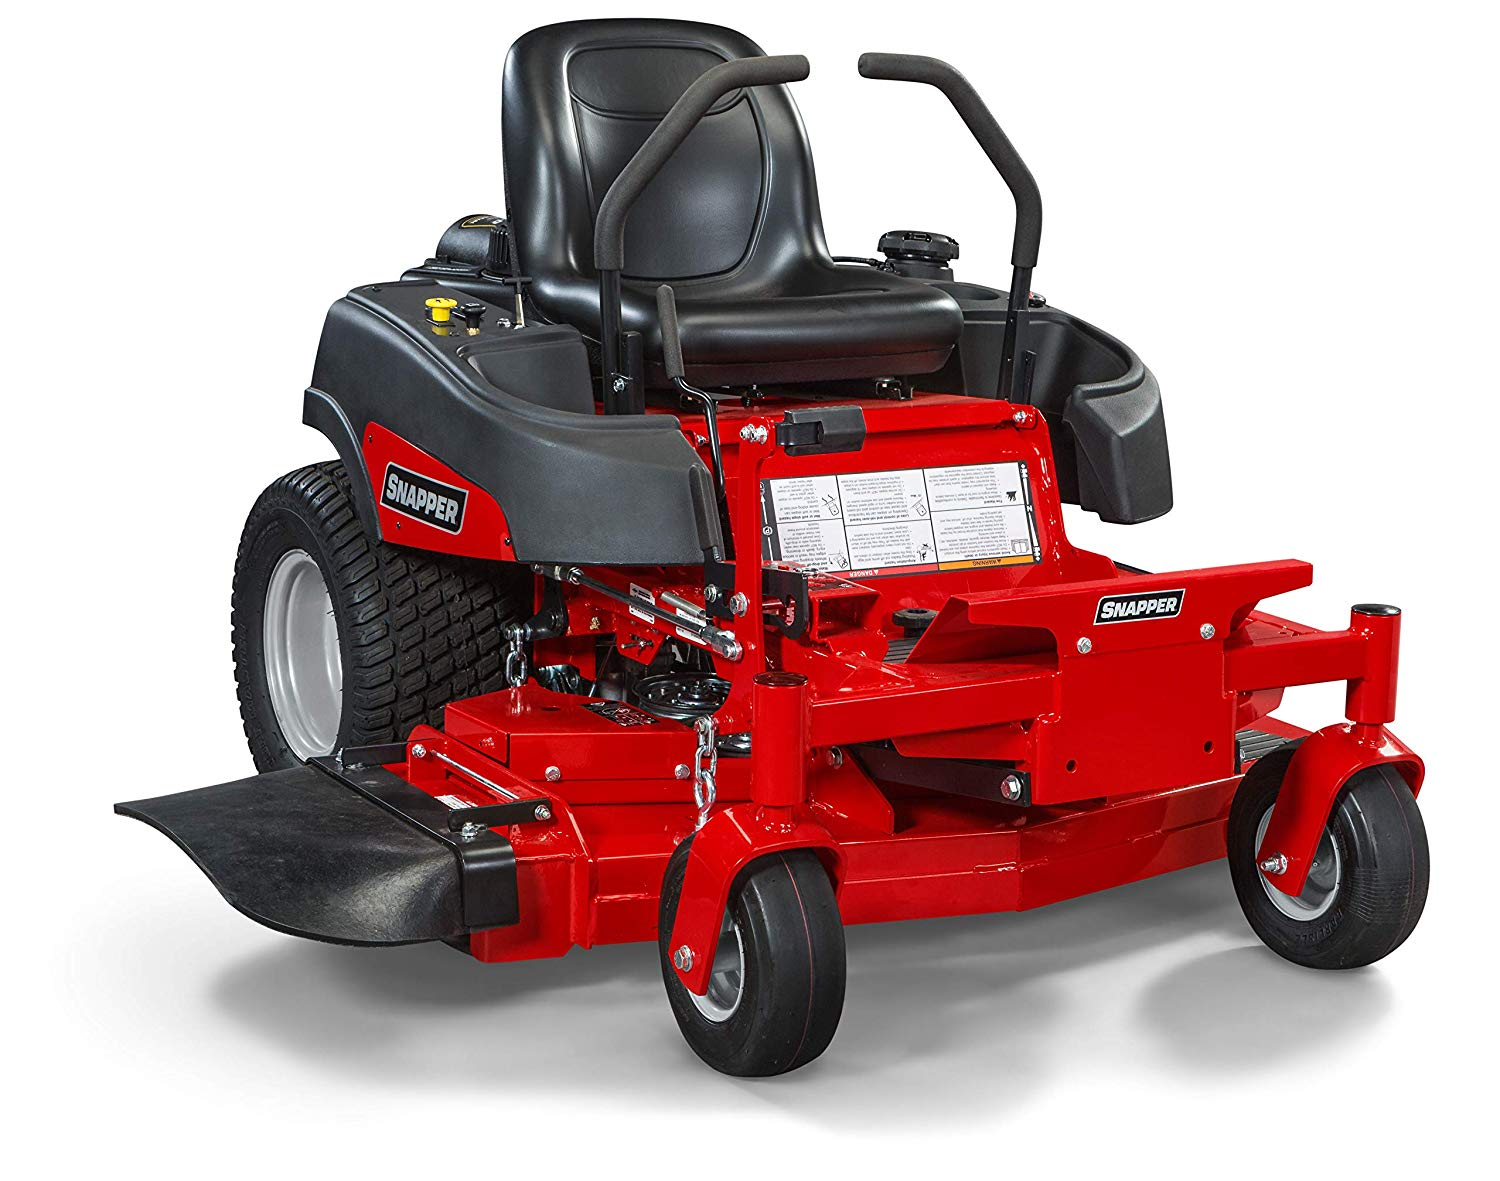 Get Quotations · Snapper 460Z 48-Inch 25HP Briggs & Stratton Commercial  Engine Zero Turn Lawn Mower,